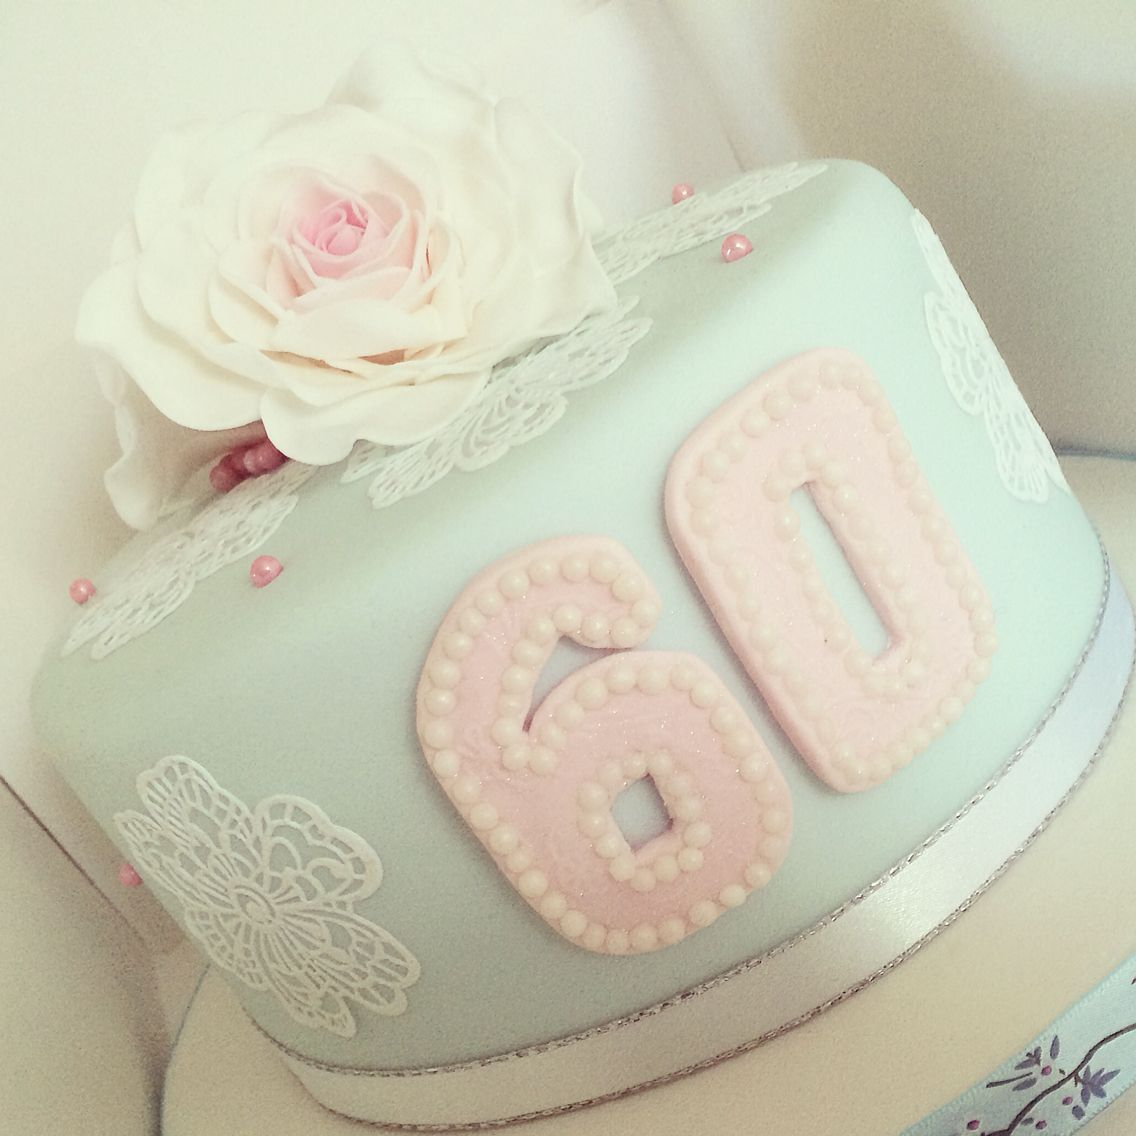 60th Birthday Cake with cake lace and hand made sugar flowers.